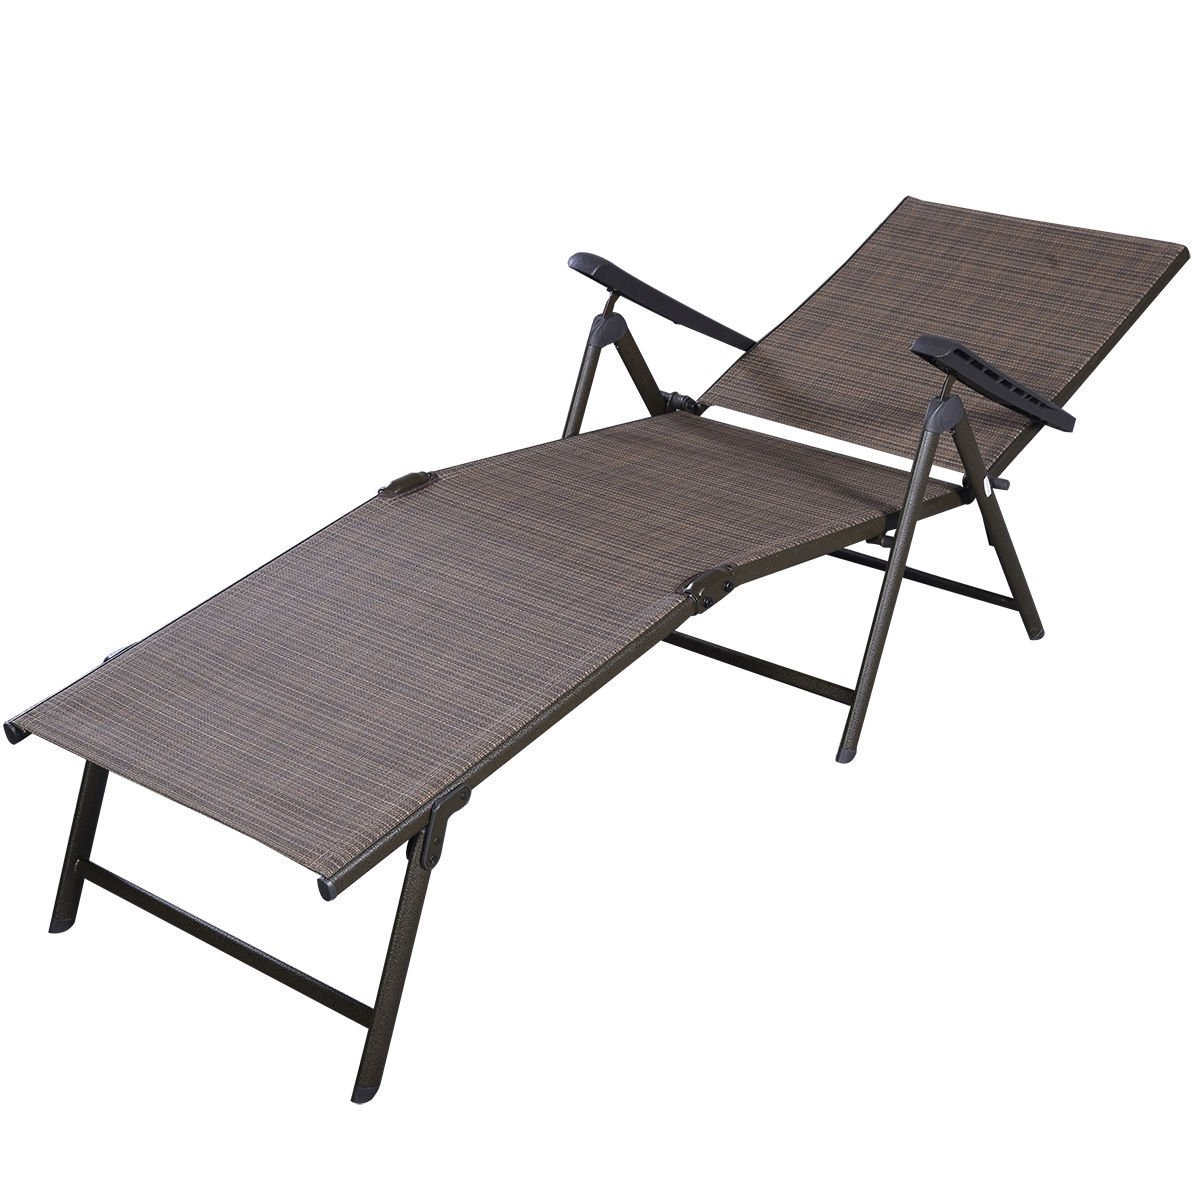 Amazon.com Giantex Adjustable Pool Chaise Lounge Chair Recliner Outdoor Patio Furniture Textilene Kitchen u0026 Dining  sc 1 st  Amazon.com : chaise patio lounge - Sectionals, Sofas & Couches